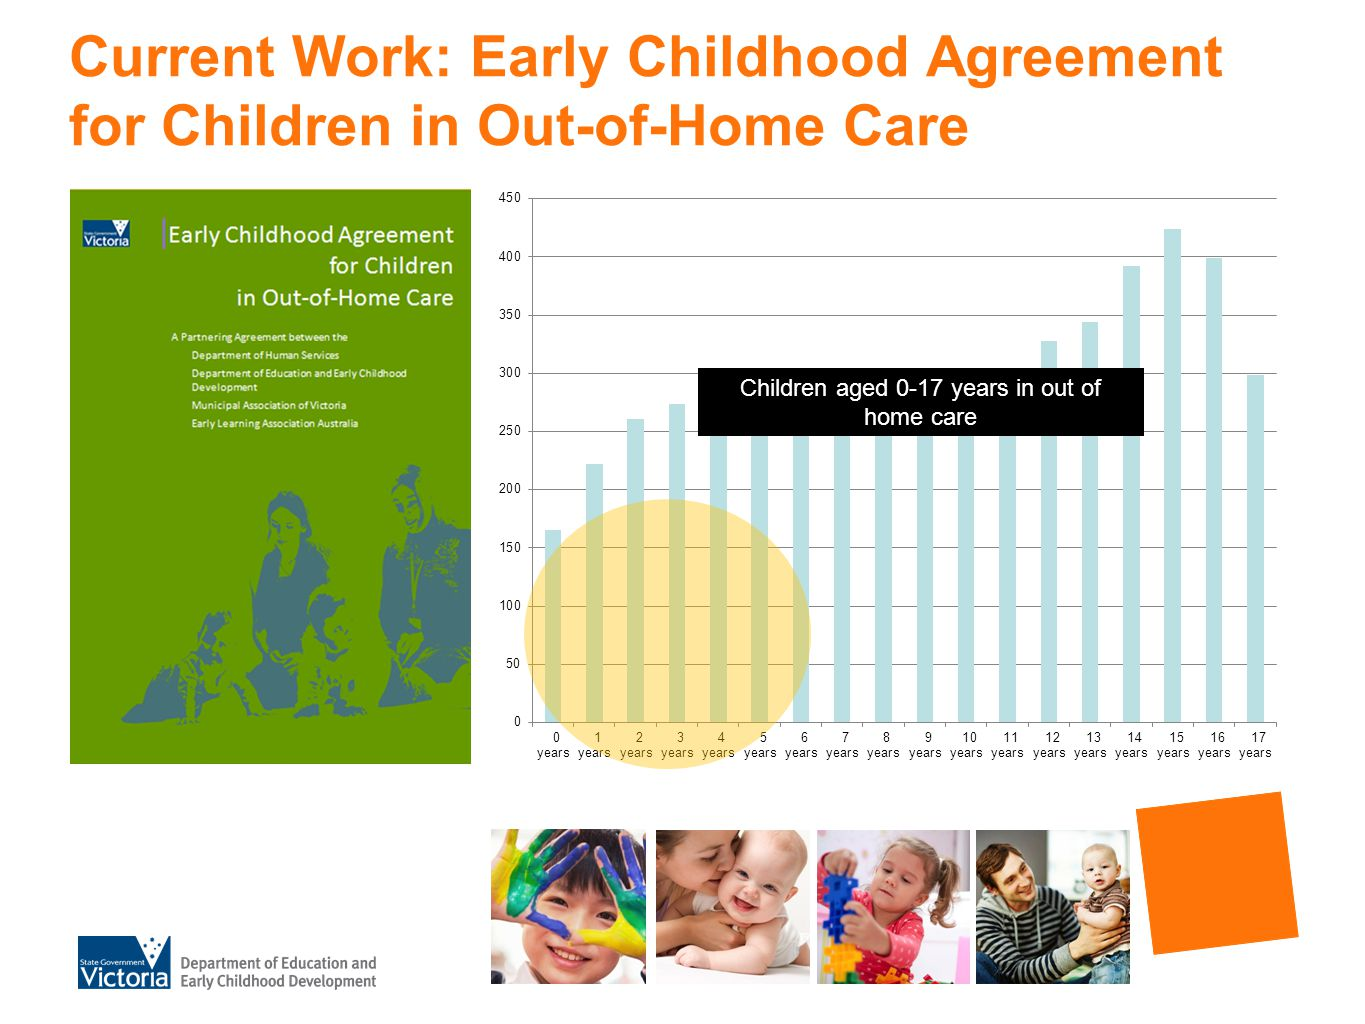 Current Work: Early Childhood Agreement for Children in Out-of-Home Care Children aged 0-17 years in out of home care